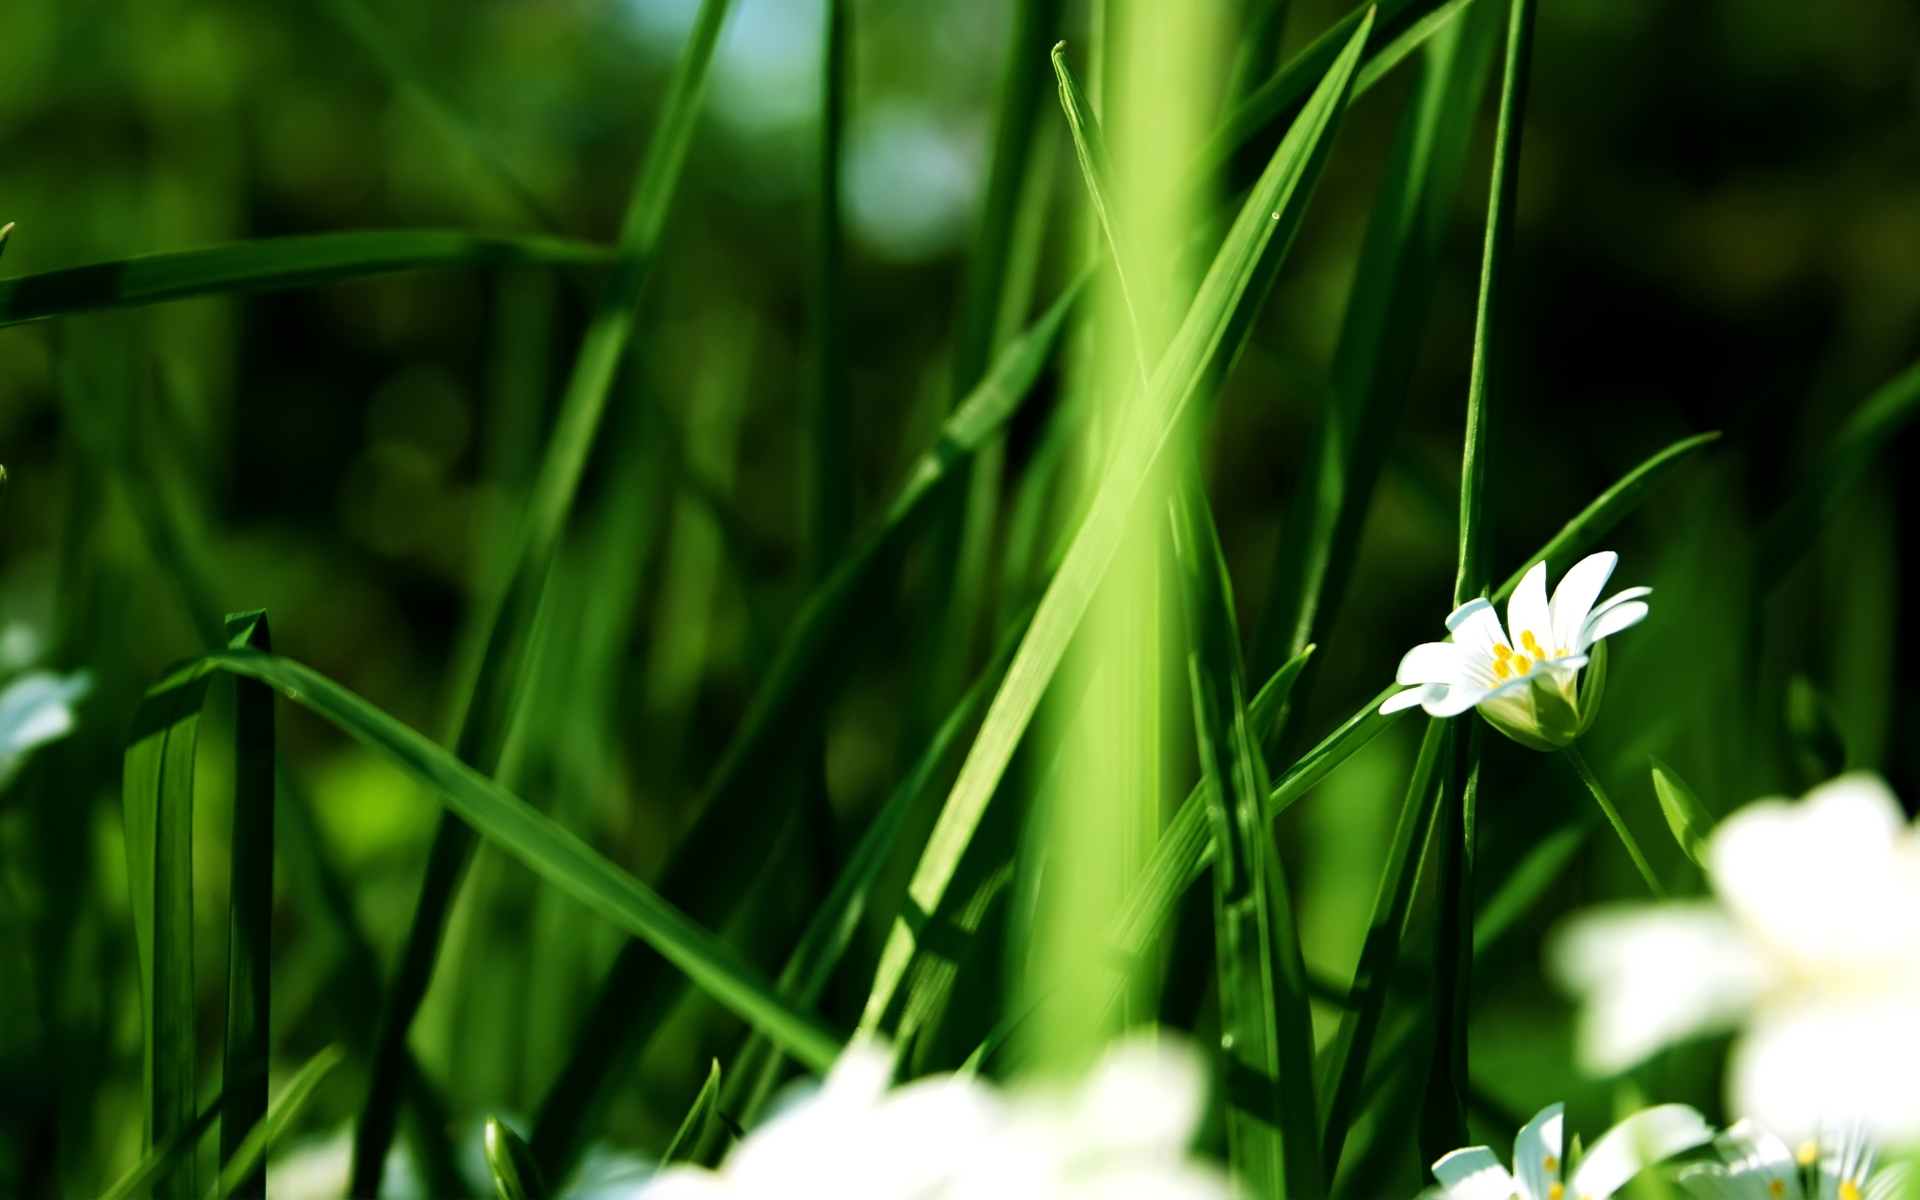 46265 download wallpaper Plants, Flowers, Camomile screensavers and pictures for free